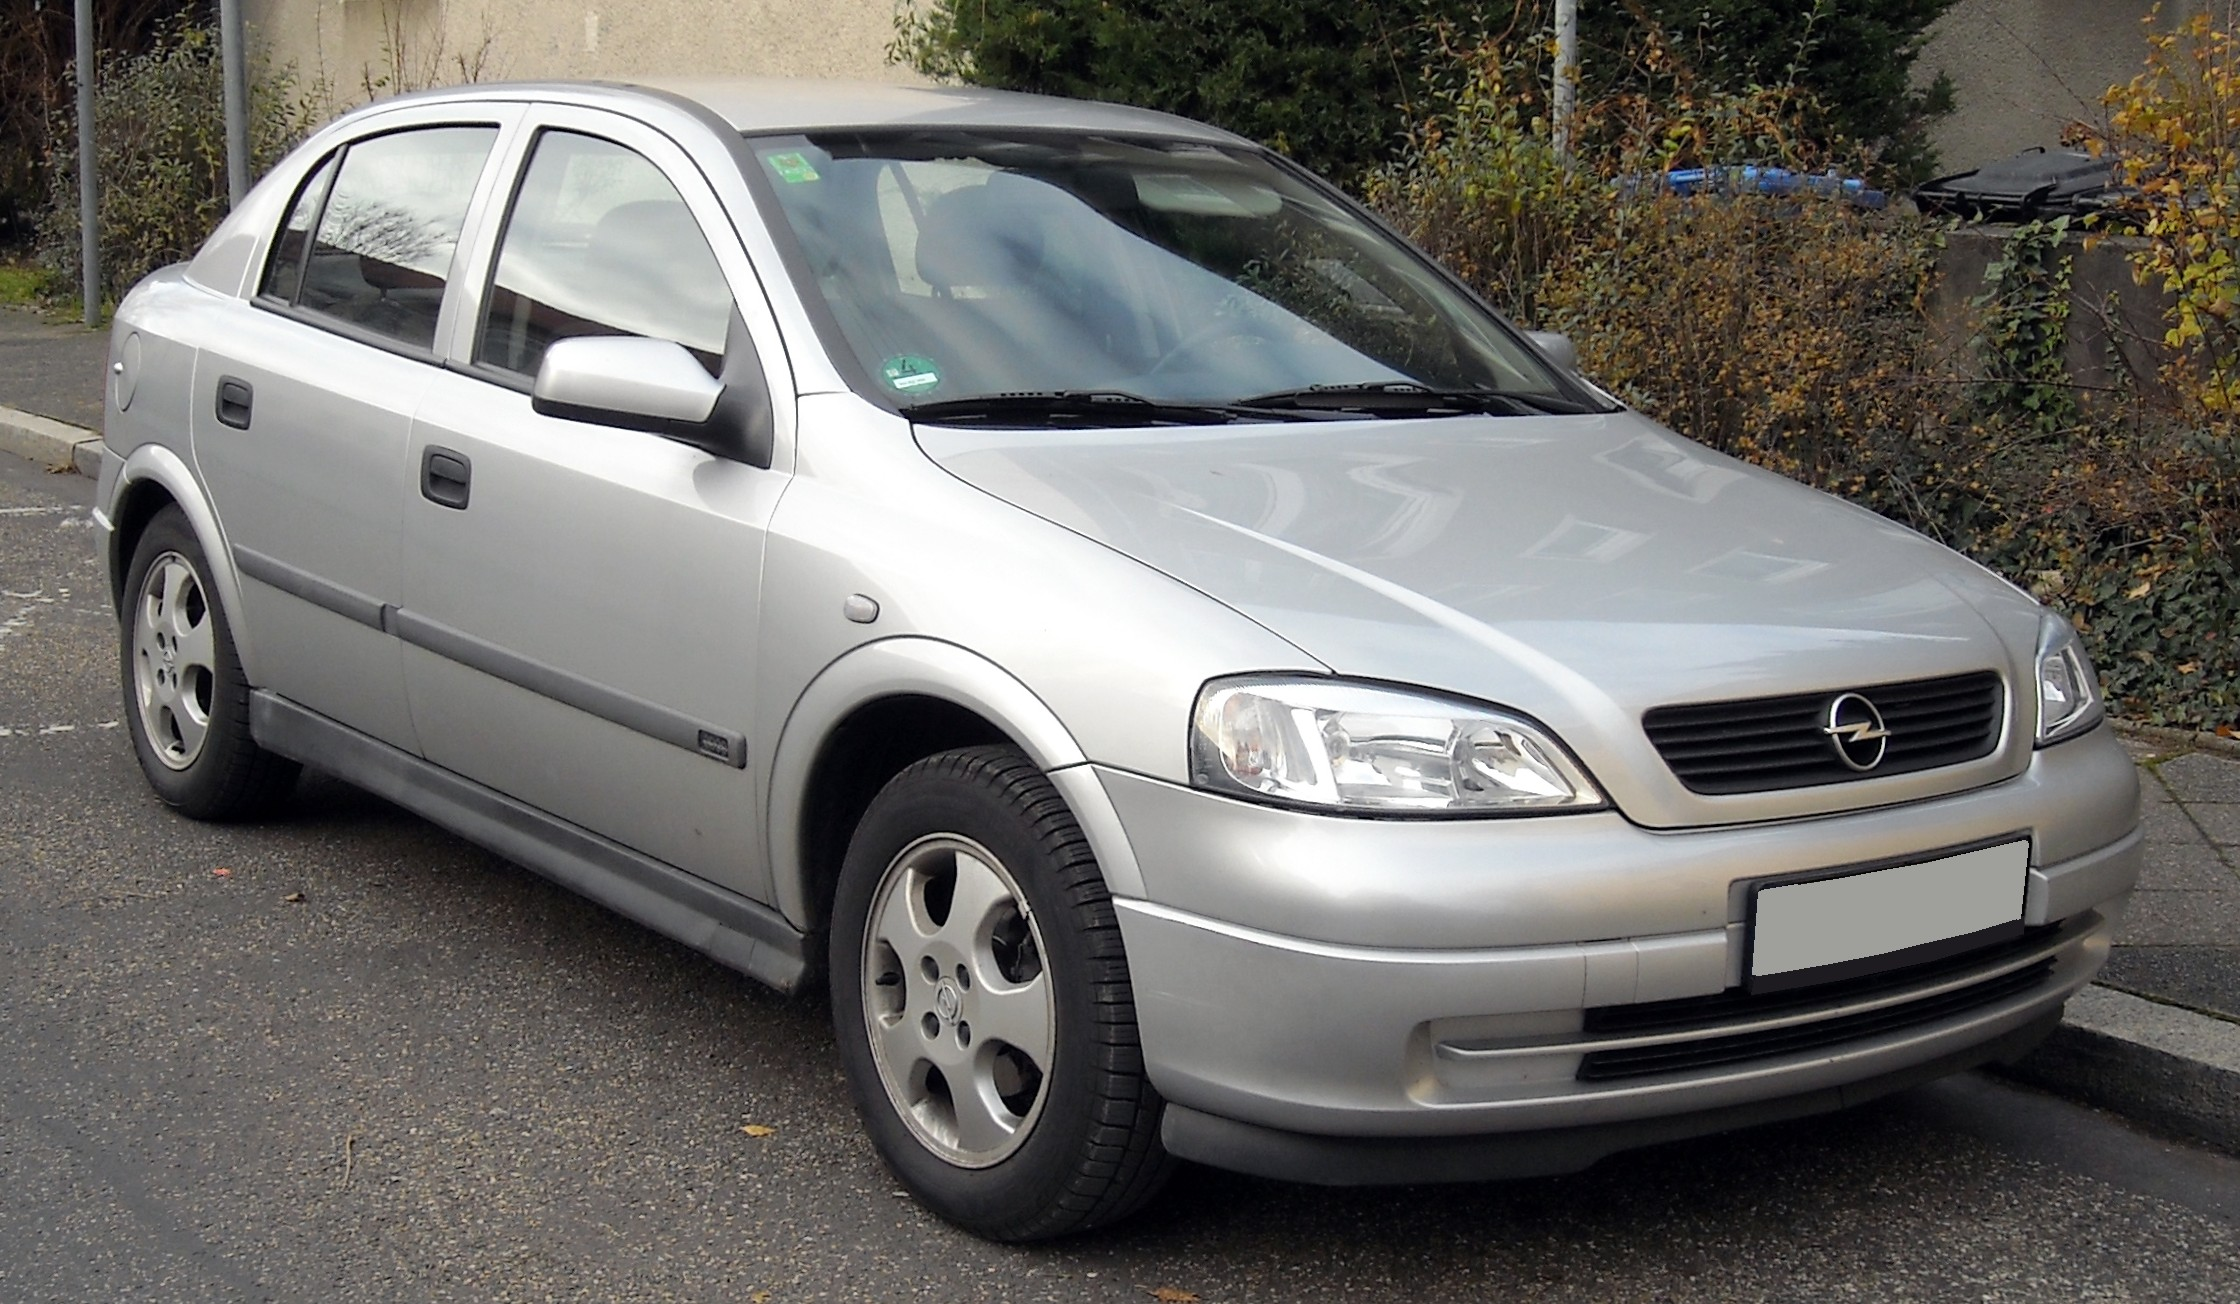 chevrolet corsa wagon (gm 4200) 1998 pics